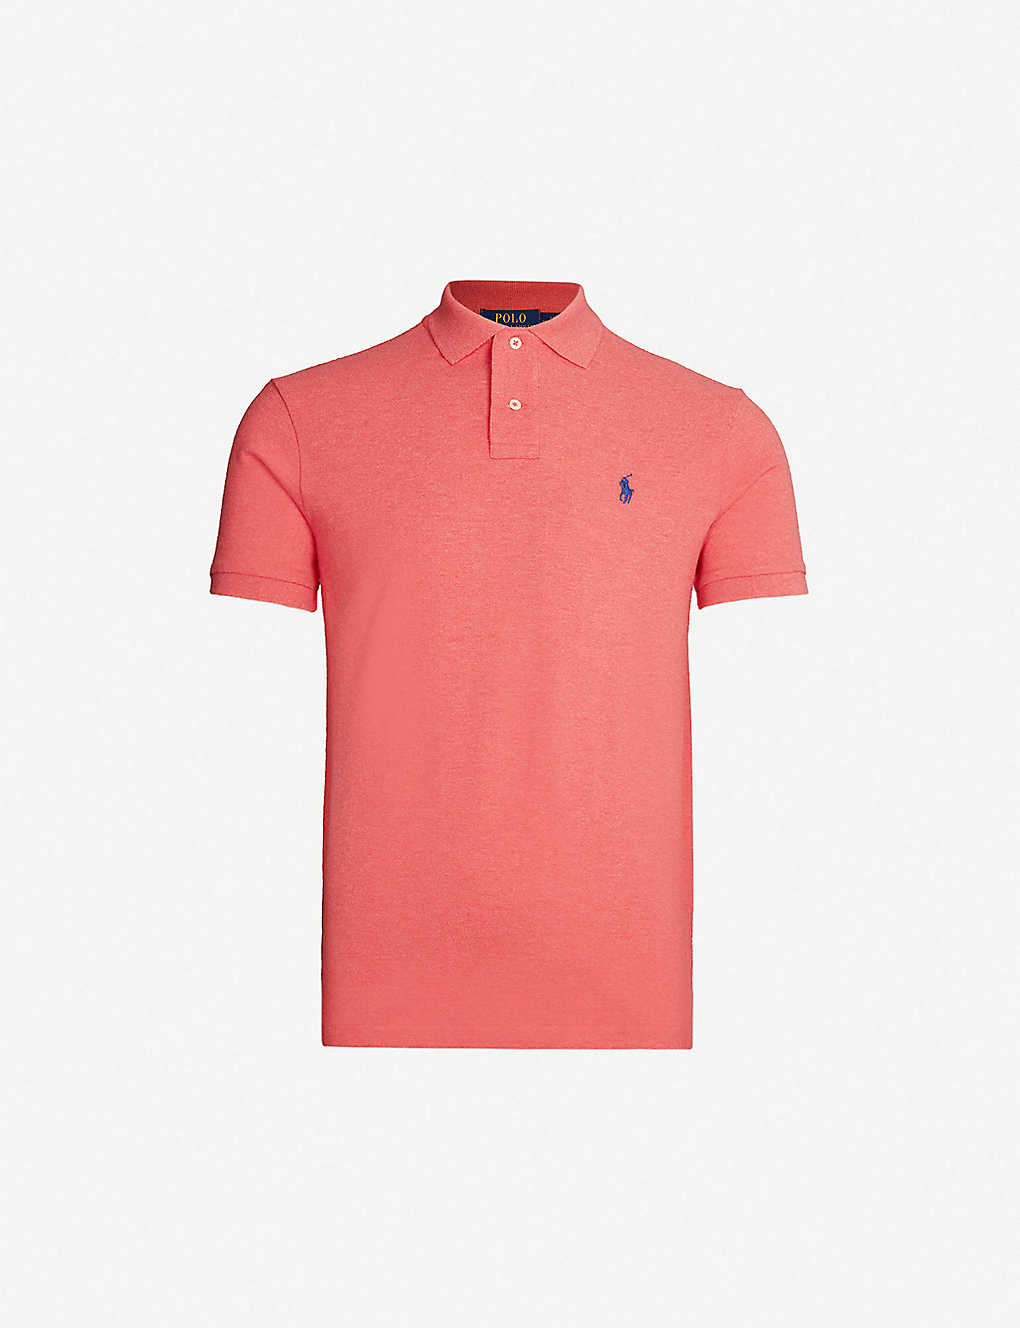 ad92fe64 Logo-embroidered cotton-piqué polo shirt - Highland rose heather ...